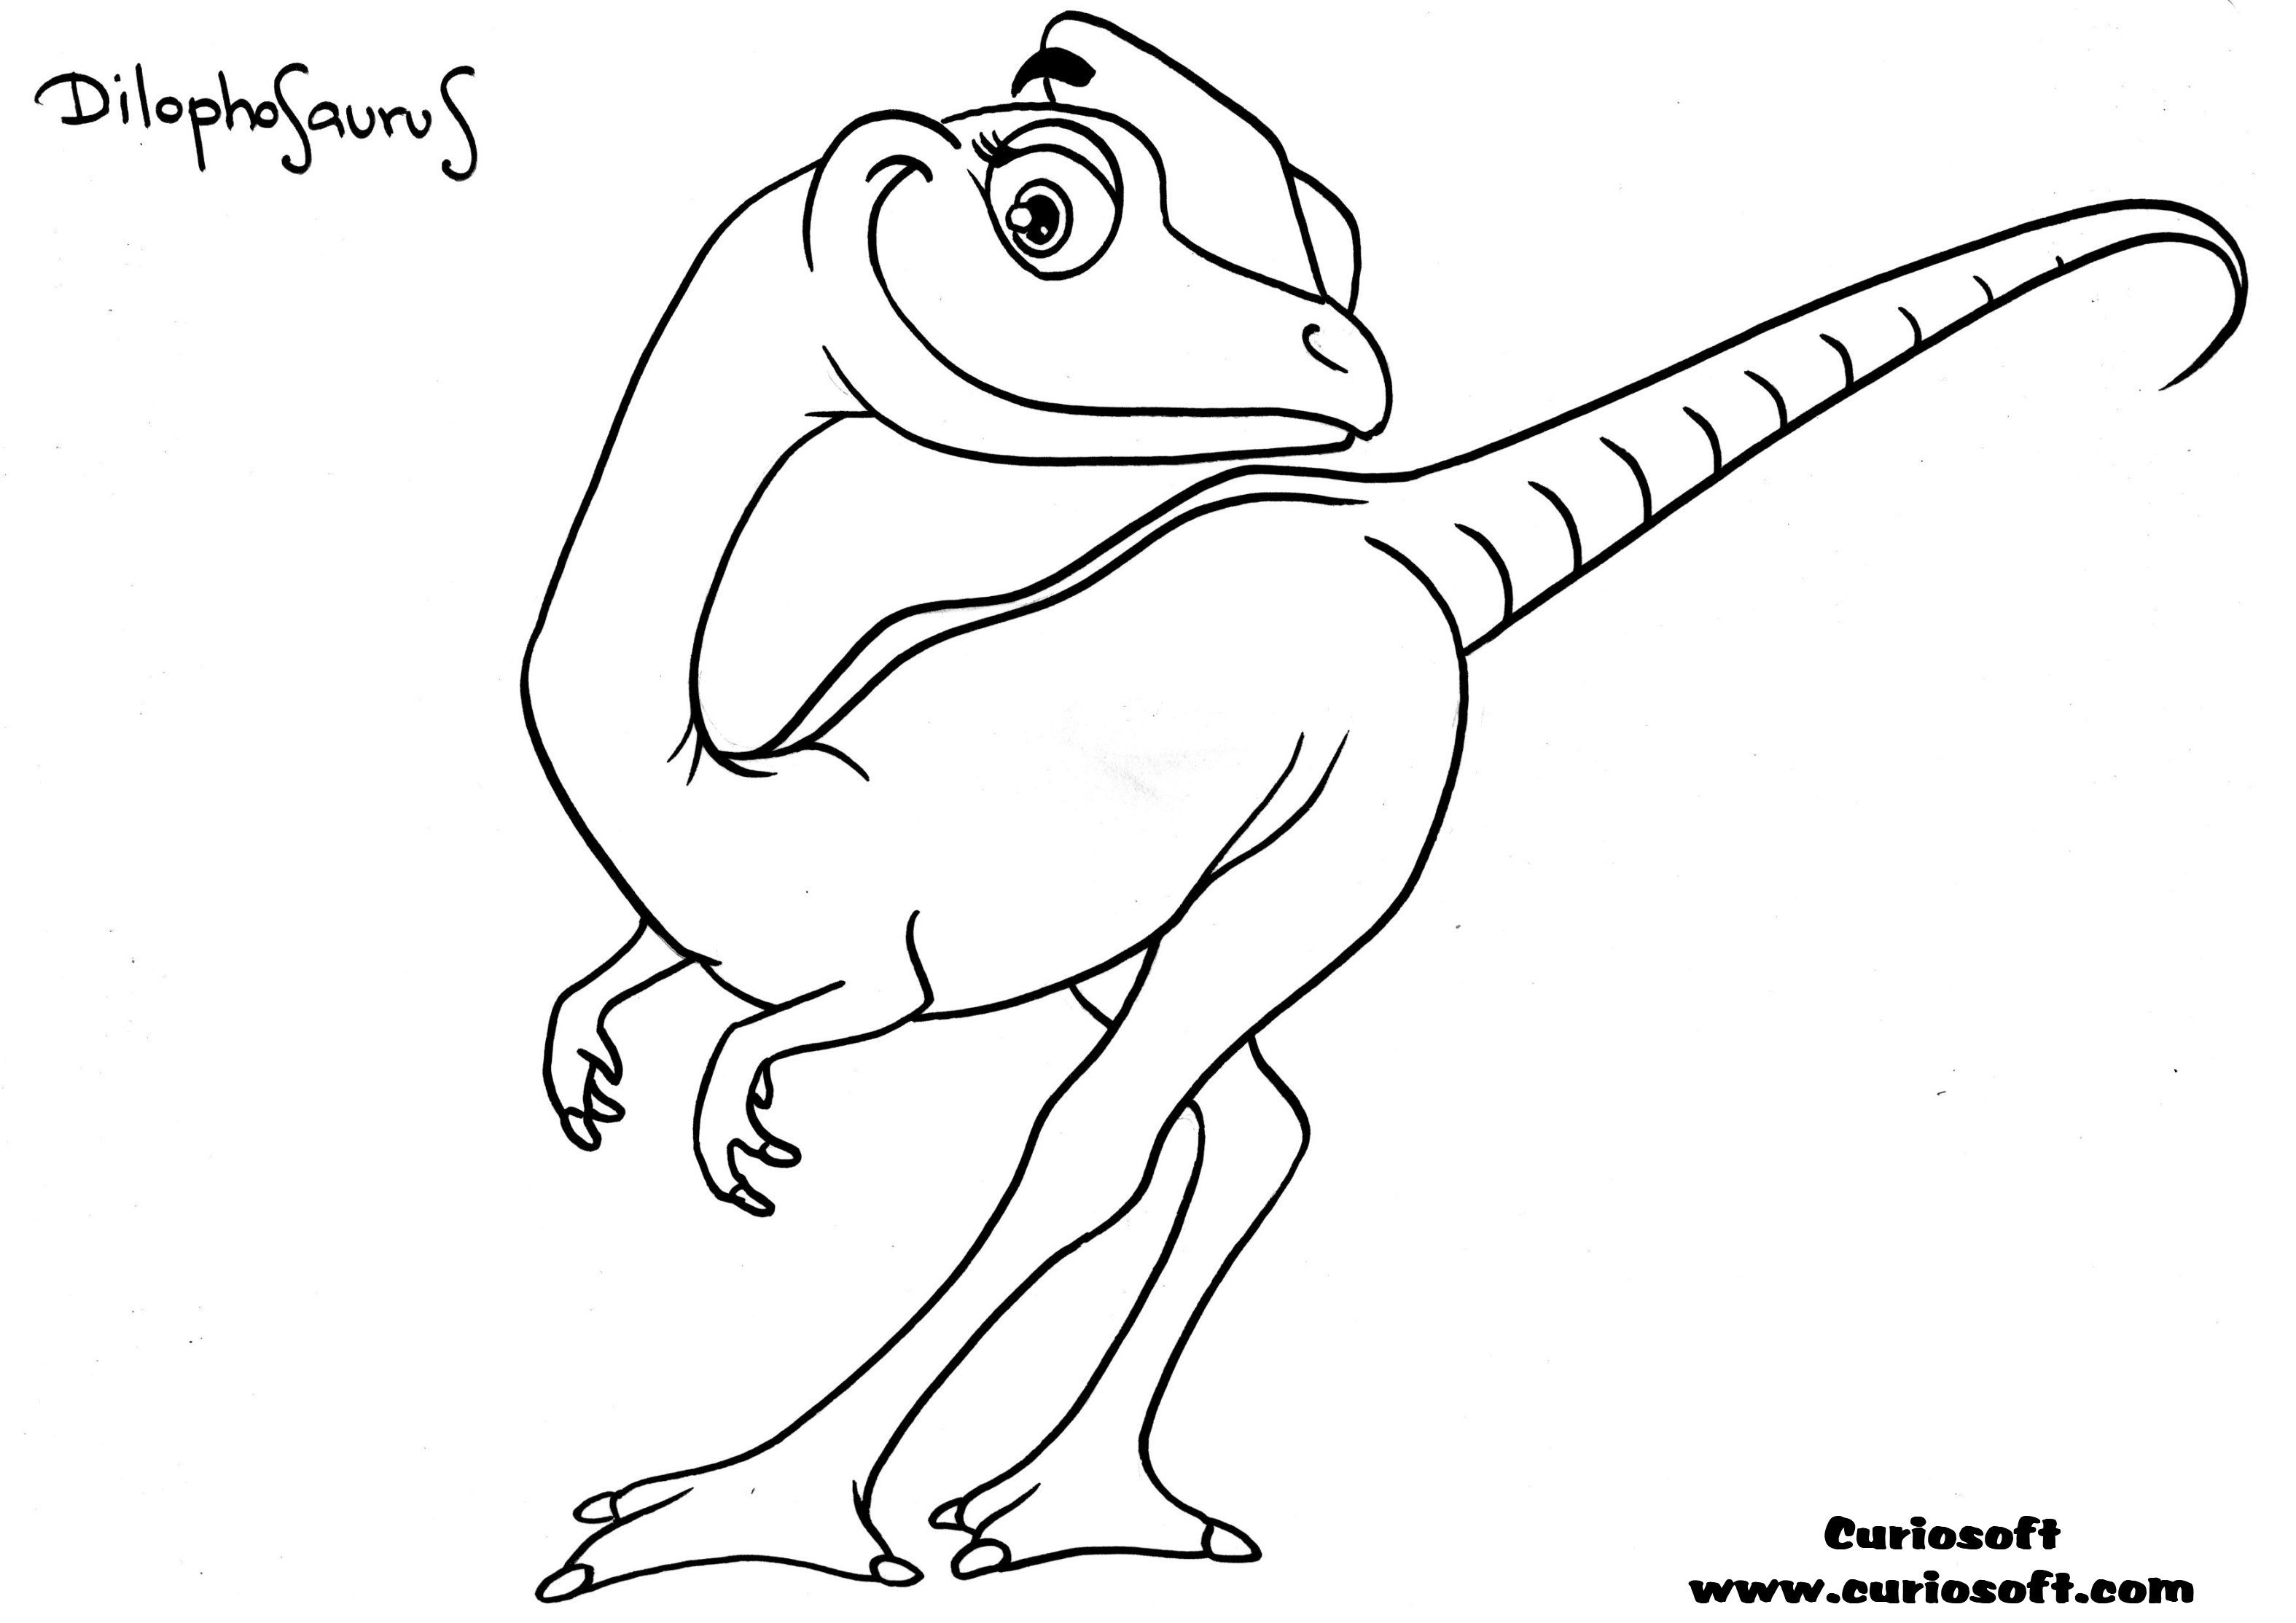 Free Kids Games Coloring Pages Dinosaur Coloring Pages